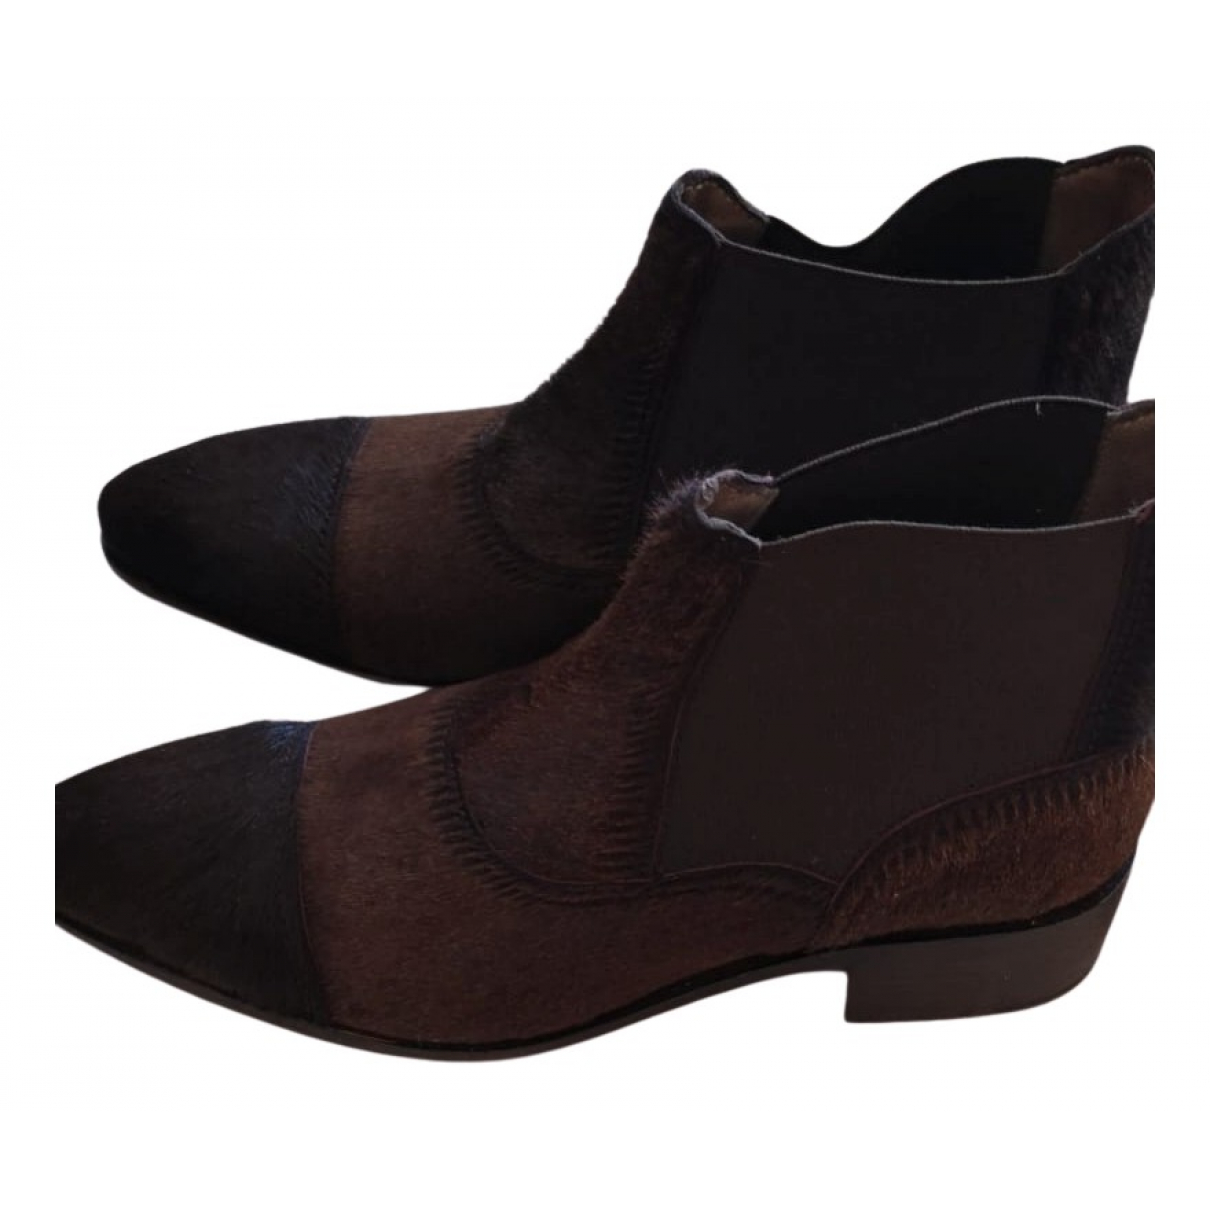 Paraboot N Brown Pony-style calfskin Ankle boots for Women 37 EU